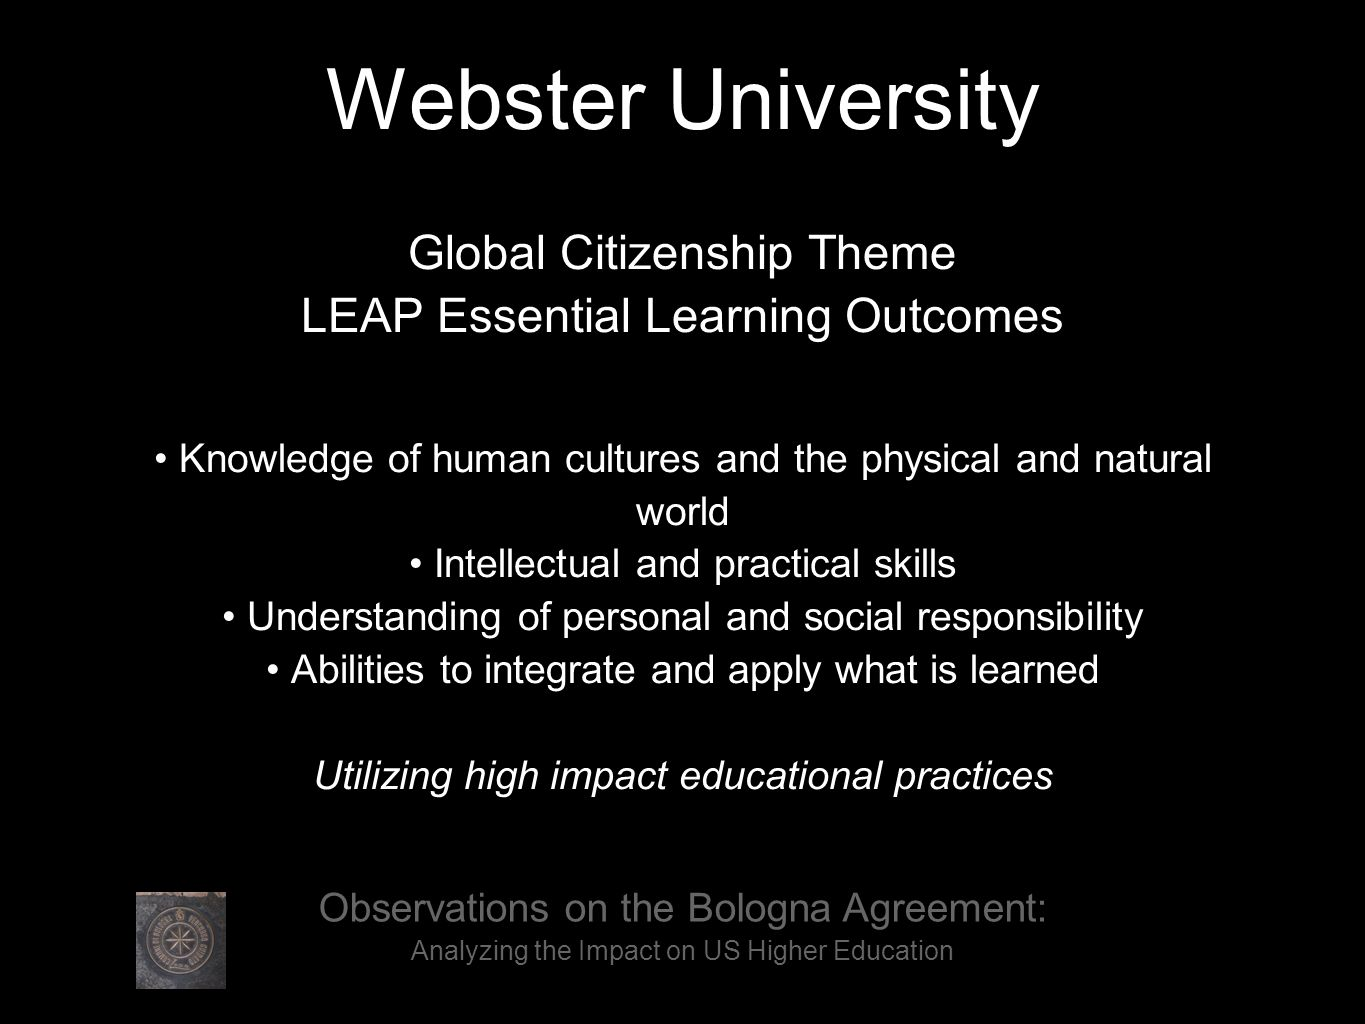 Webster University Global Citizenship Theme LEAP Essential Learning Outcomes Knowledge of human cultures and the physical and natural world Intellectual and practical skills Understanding of personal and social responsibility Abilities to integrate and apply what is learned Utilizing high impact educational practices Observations on the Bologna Agreement: Analyzing the Impact on US Higher Education